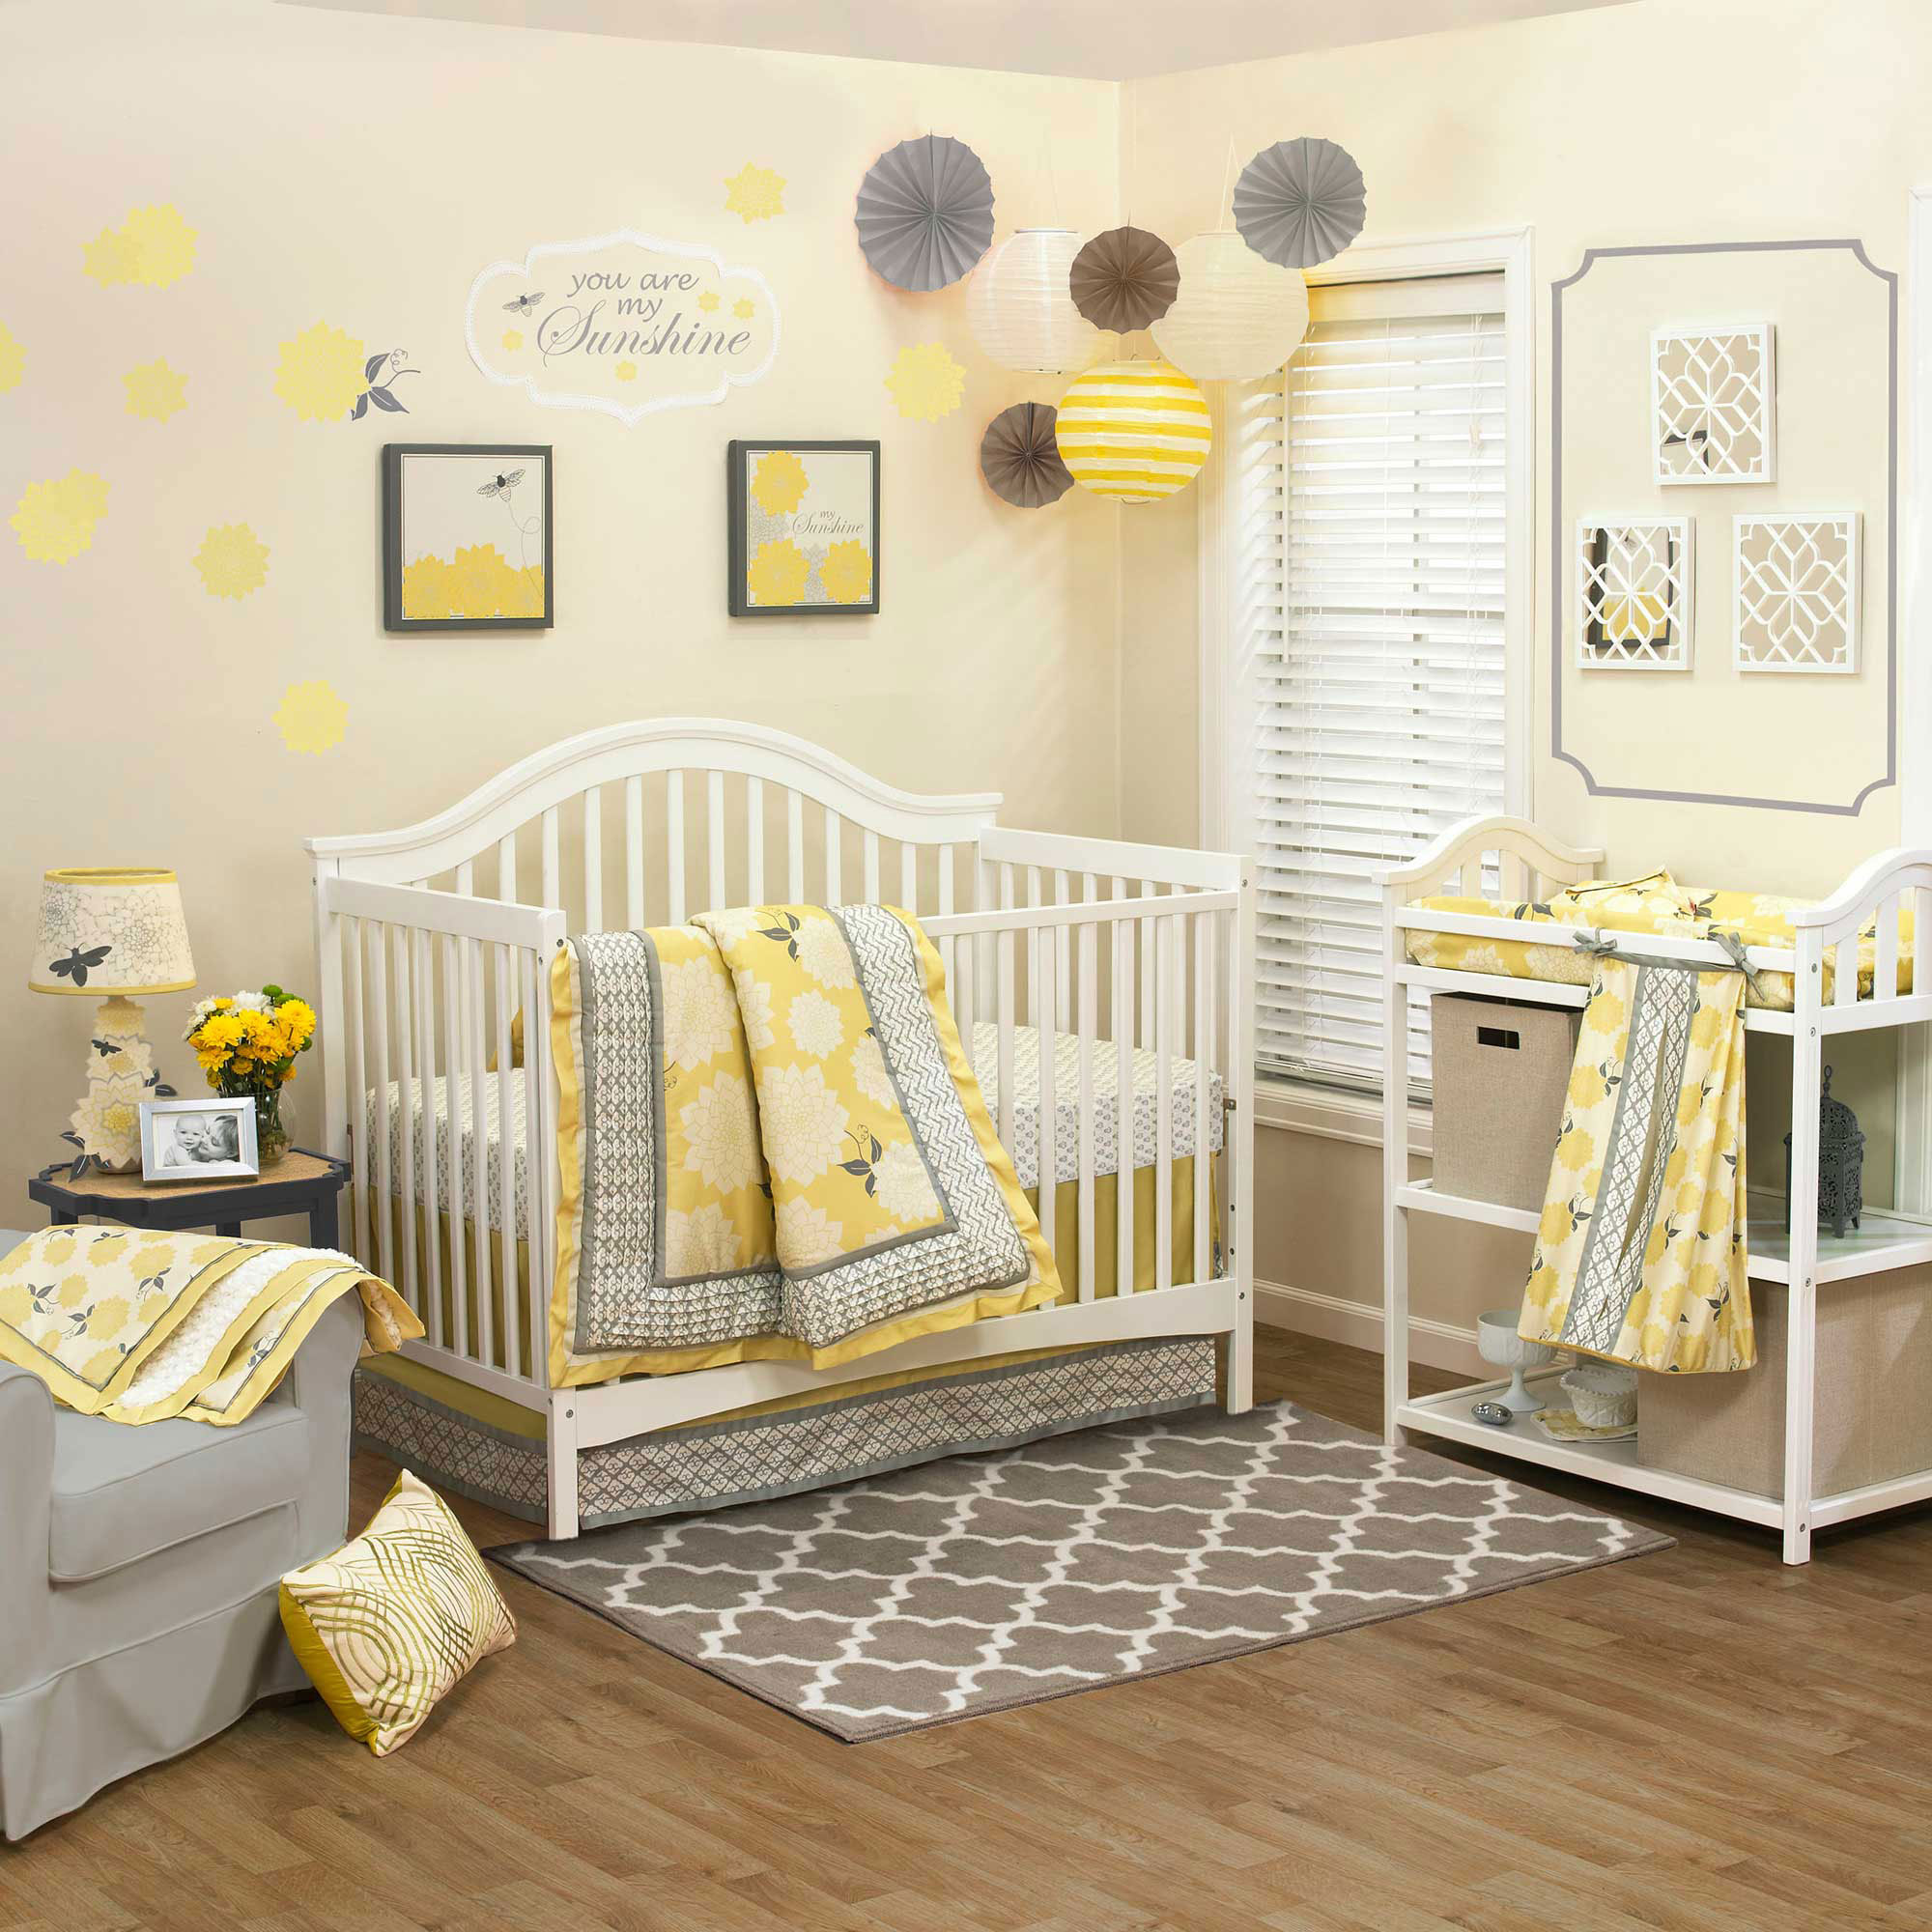 Baby Girl Nursery Ideas: 10 Pretty Examples